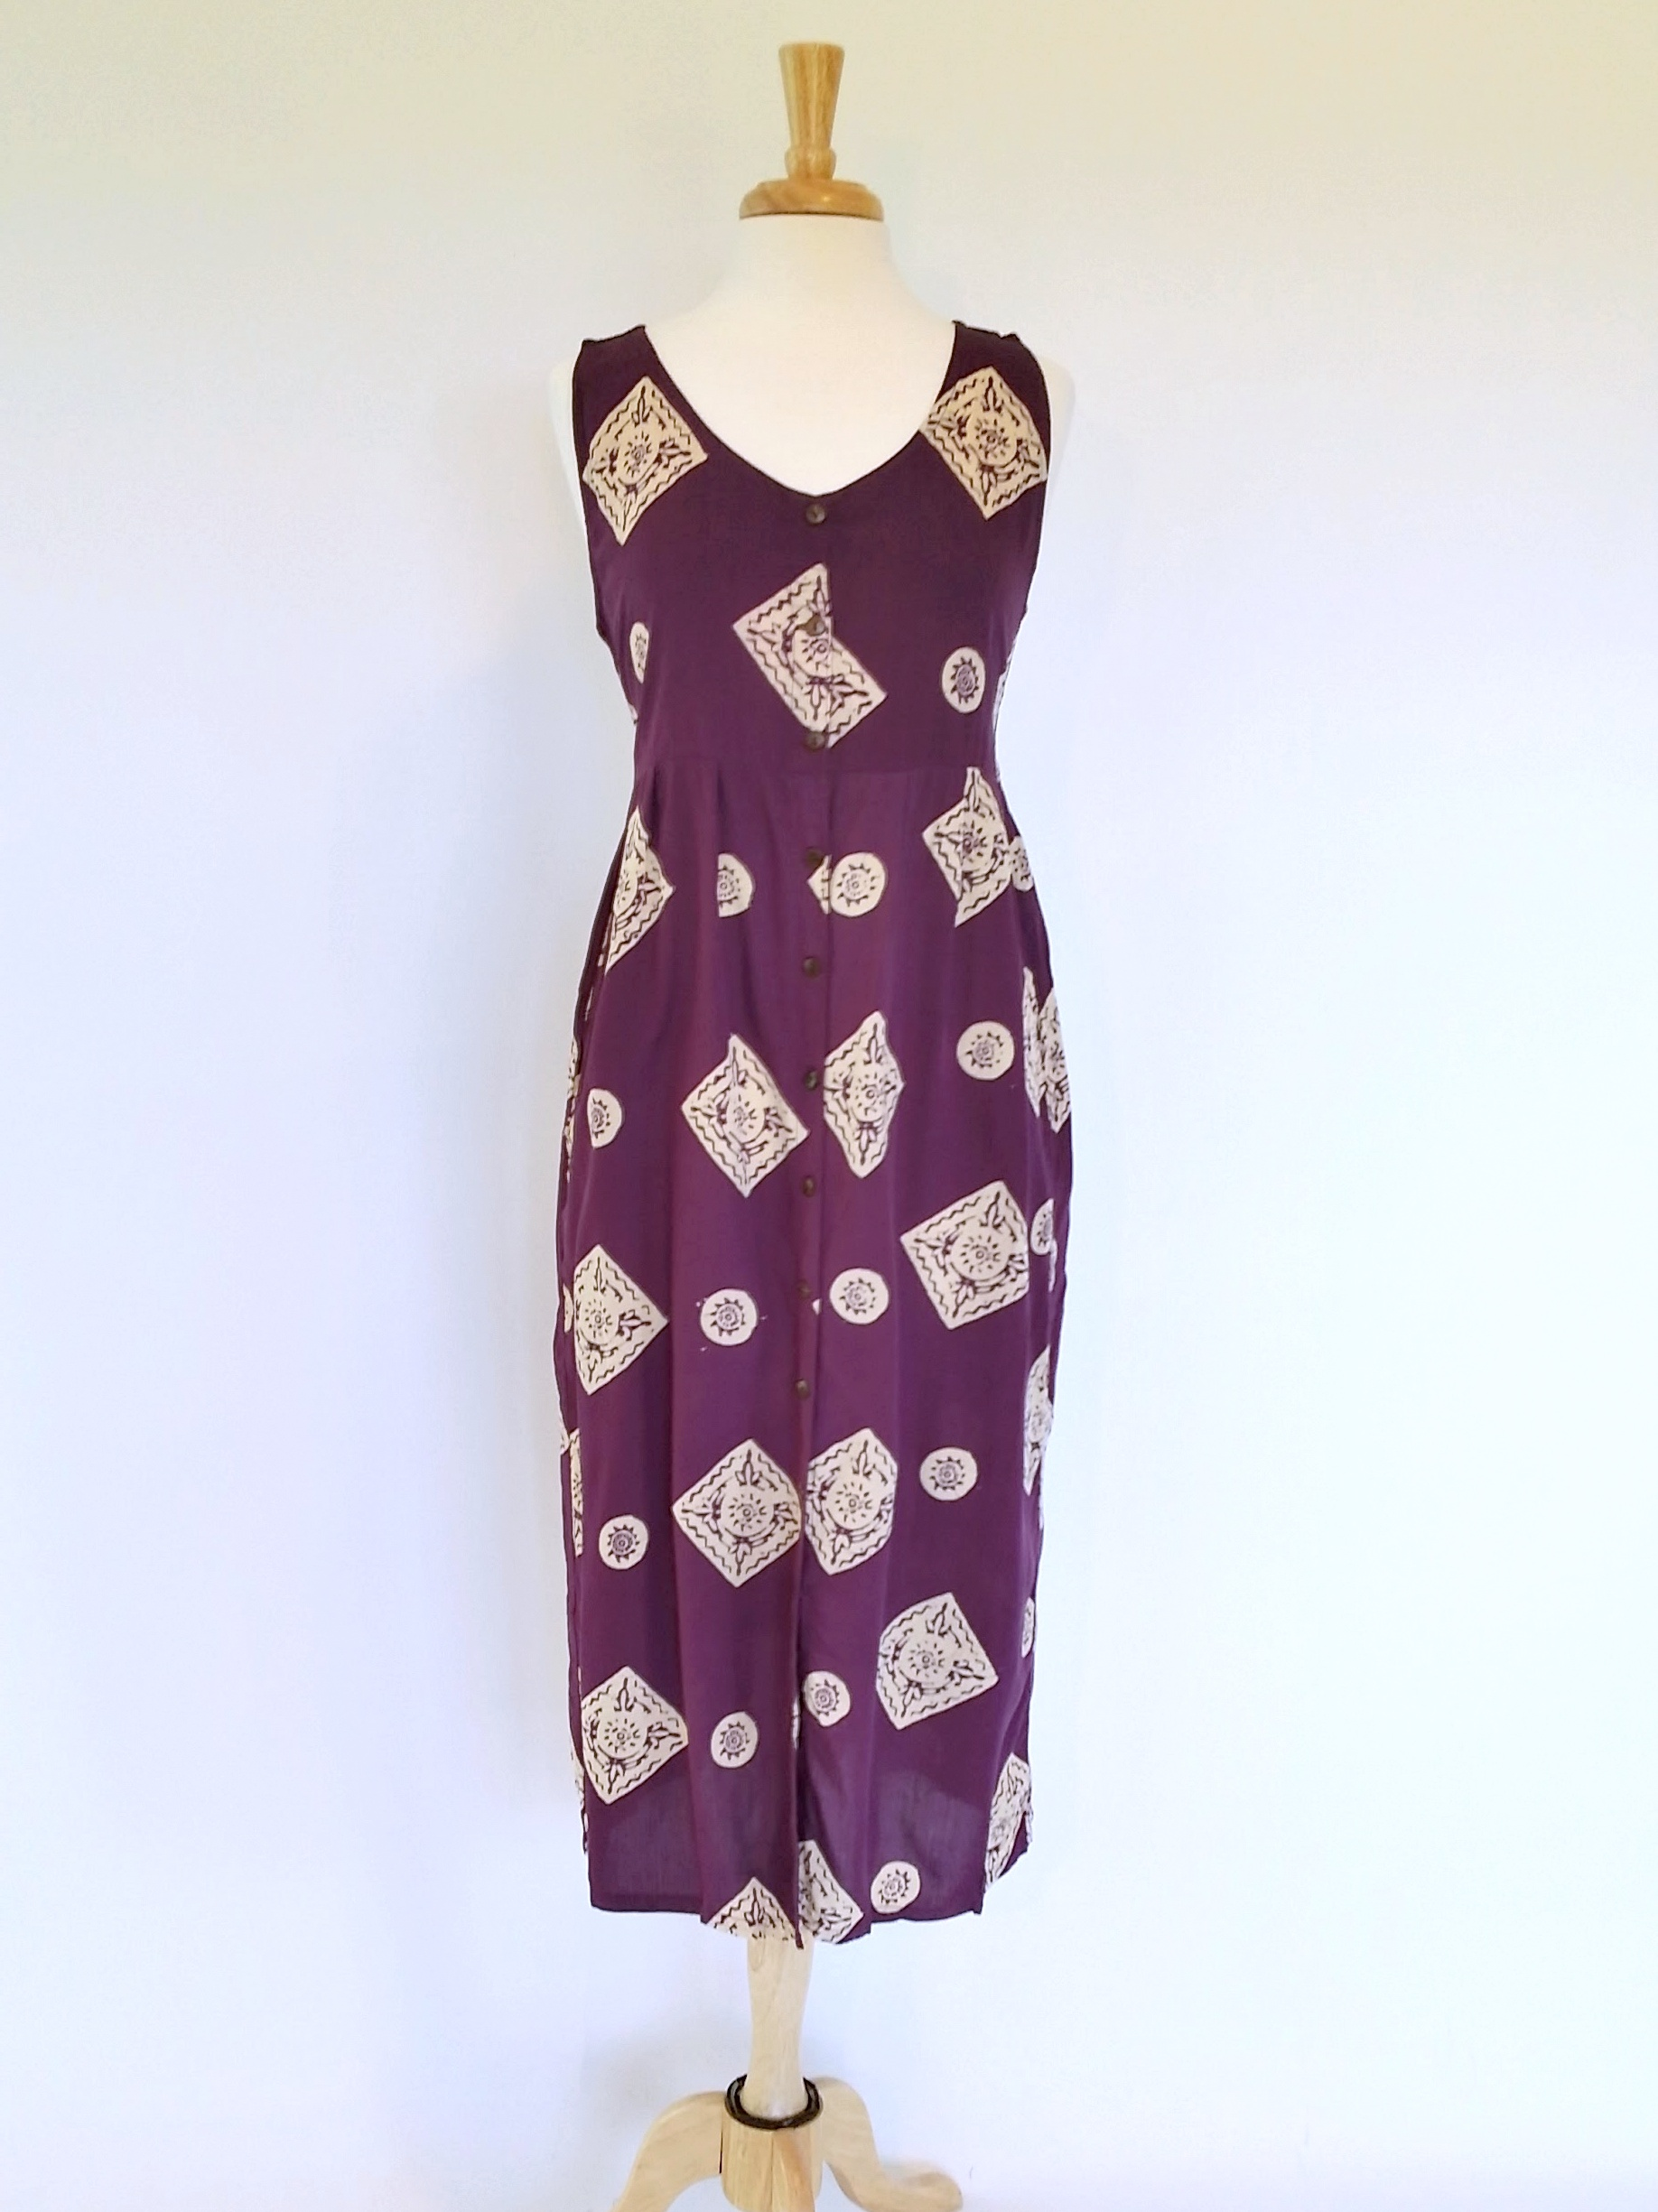 Elle Dress in Plum Medallions